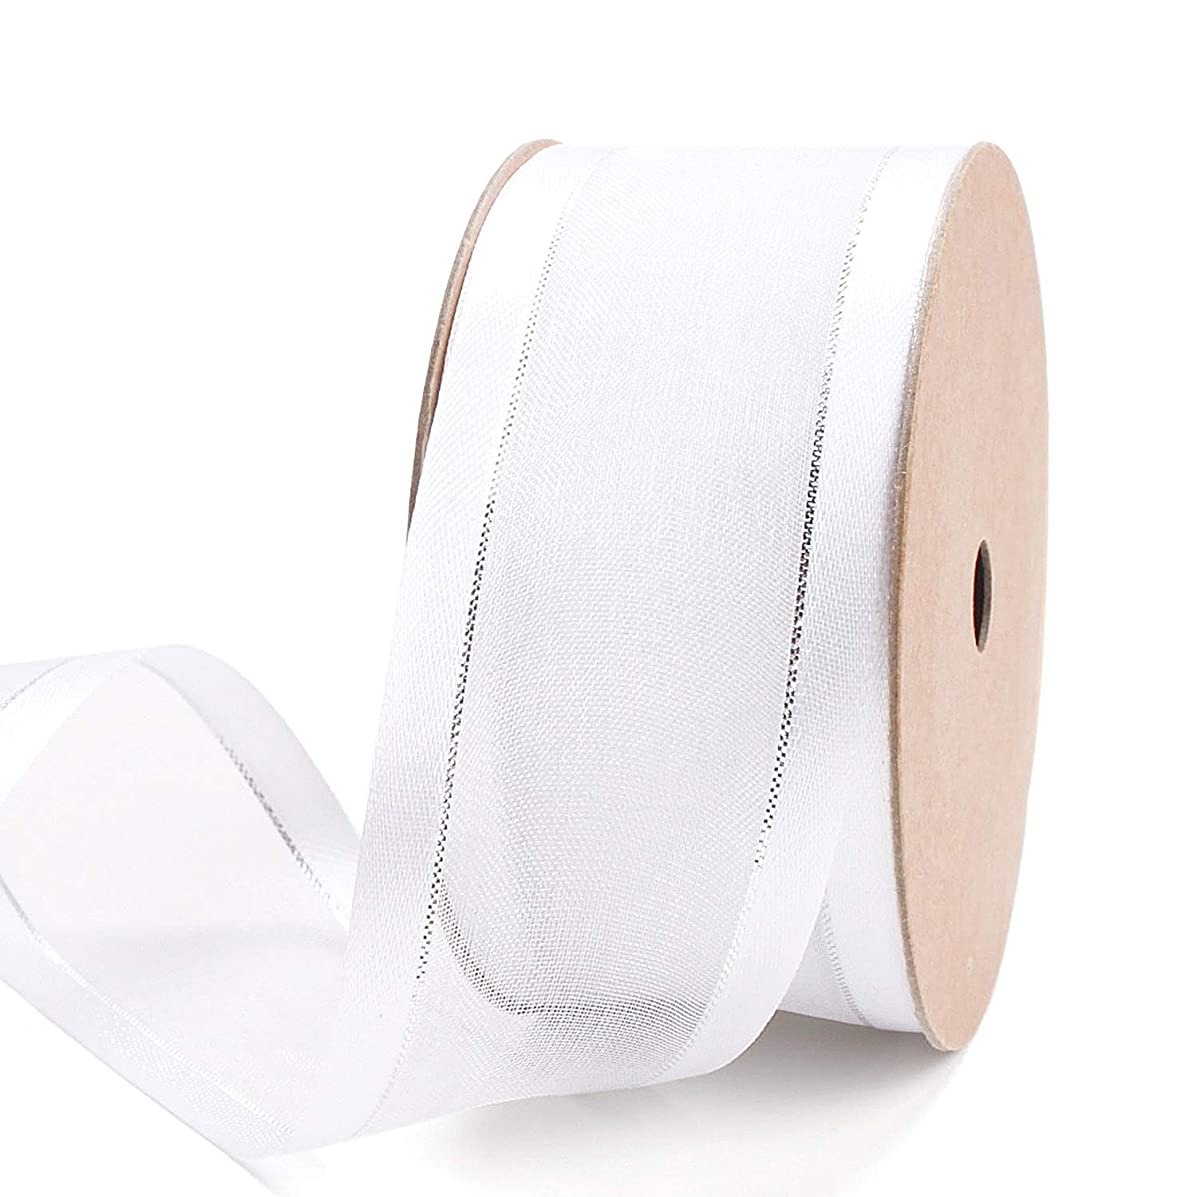 LaRibbons 1.5 inch White Sheer Organza Ribbon - Stain Edges with Silver Glitter Line for Decoration, Craft, Gift Wrappping - 10 Yard/Spool